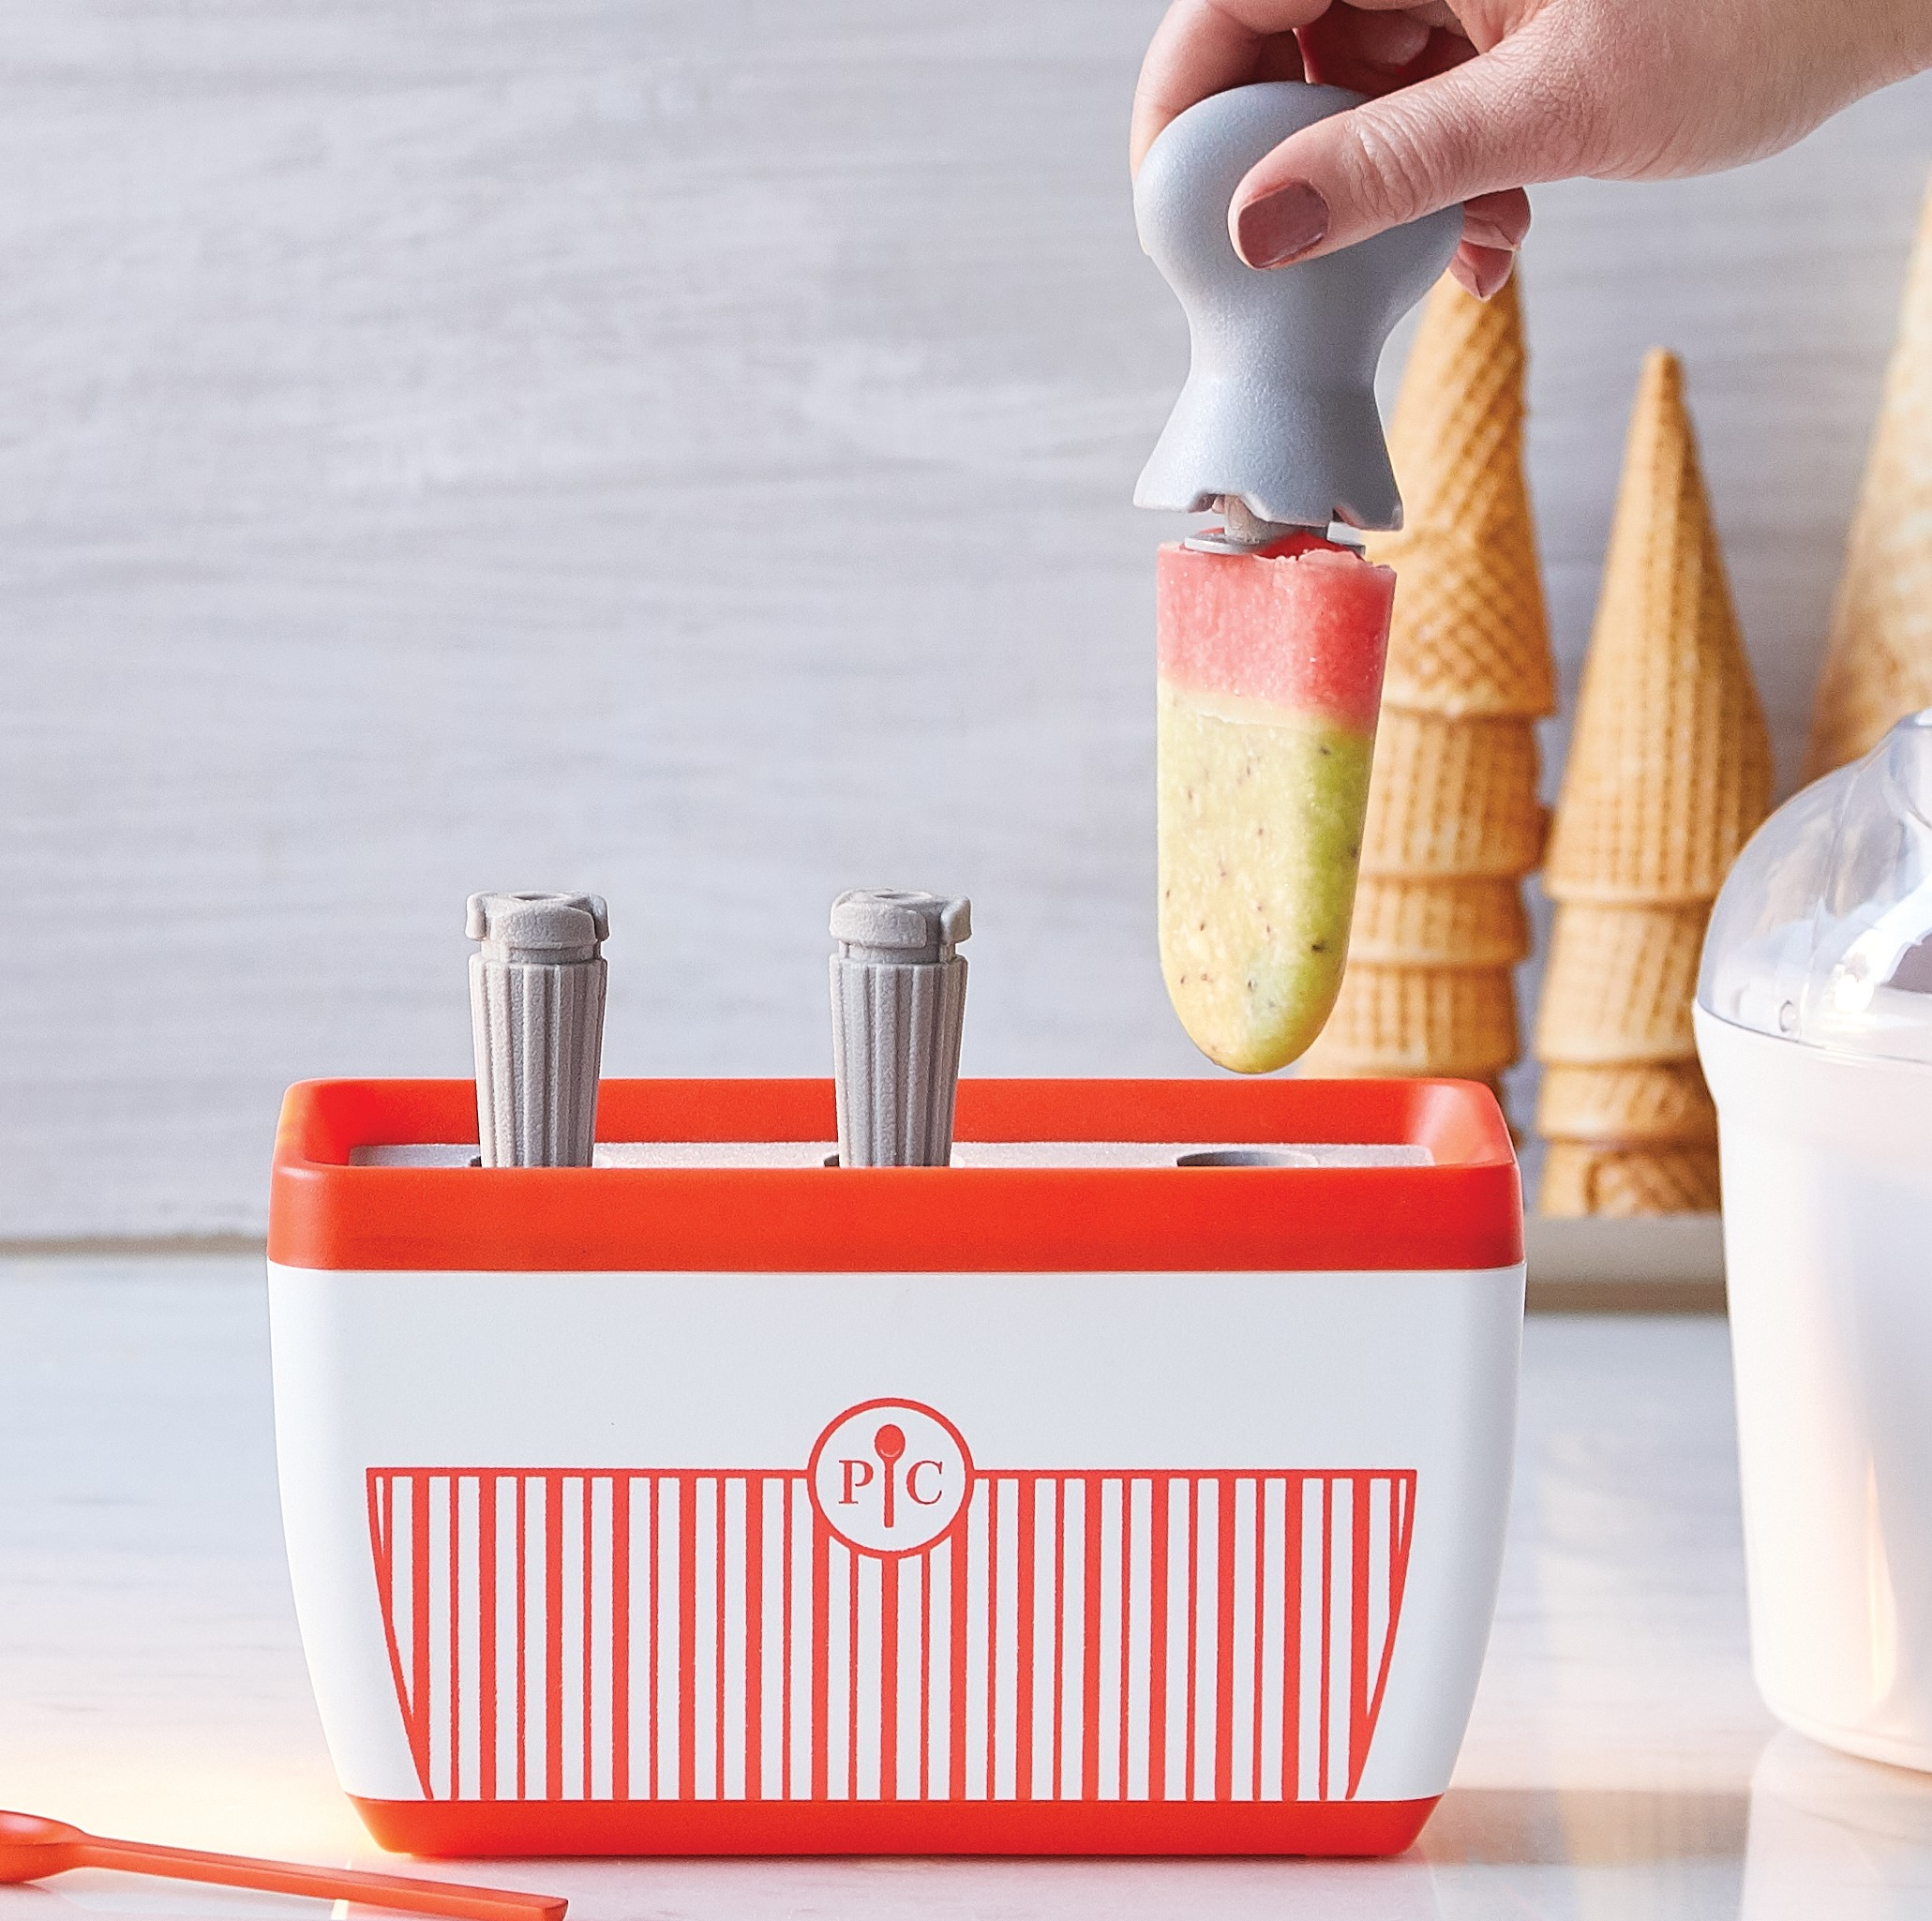 Pampered Chef Quicksicle Maker